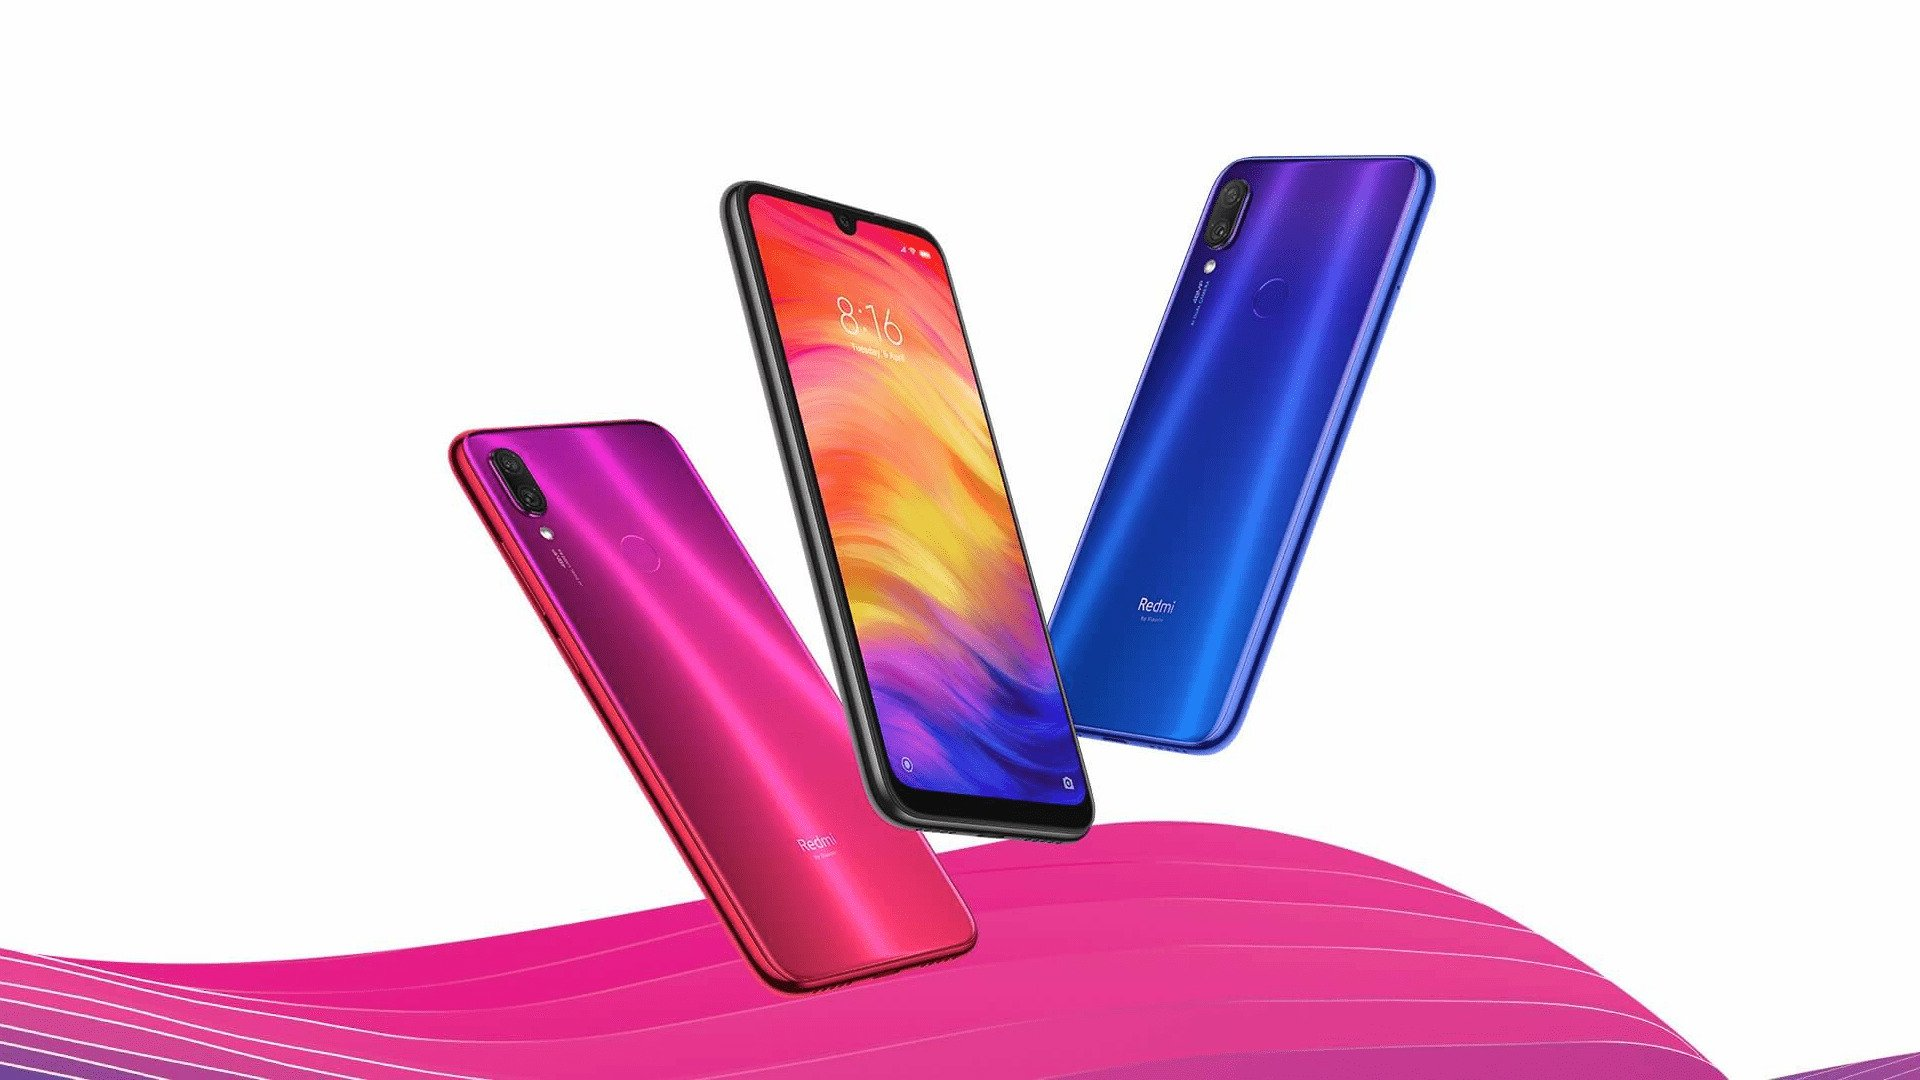 Xiaomi Redmi Note 7 available in the UK for £179